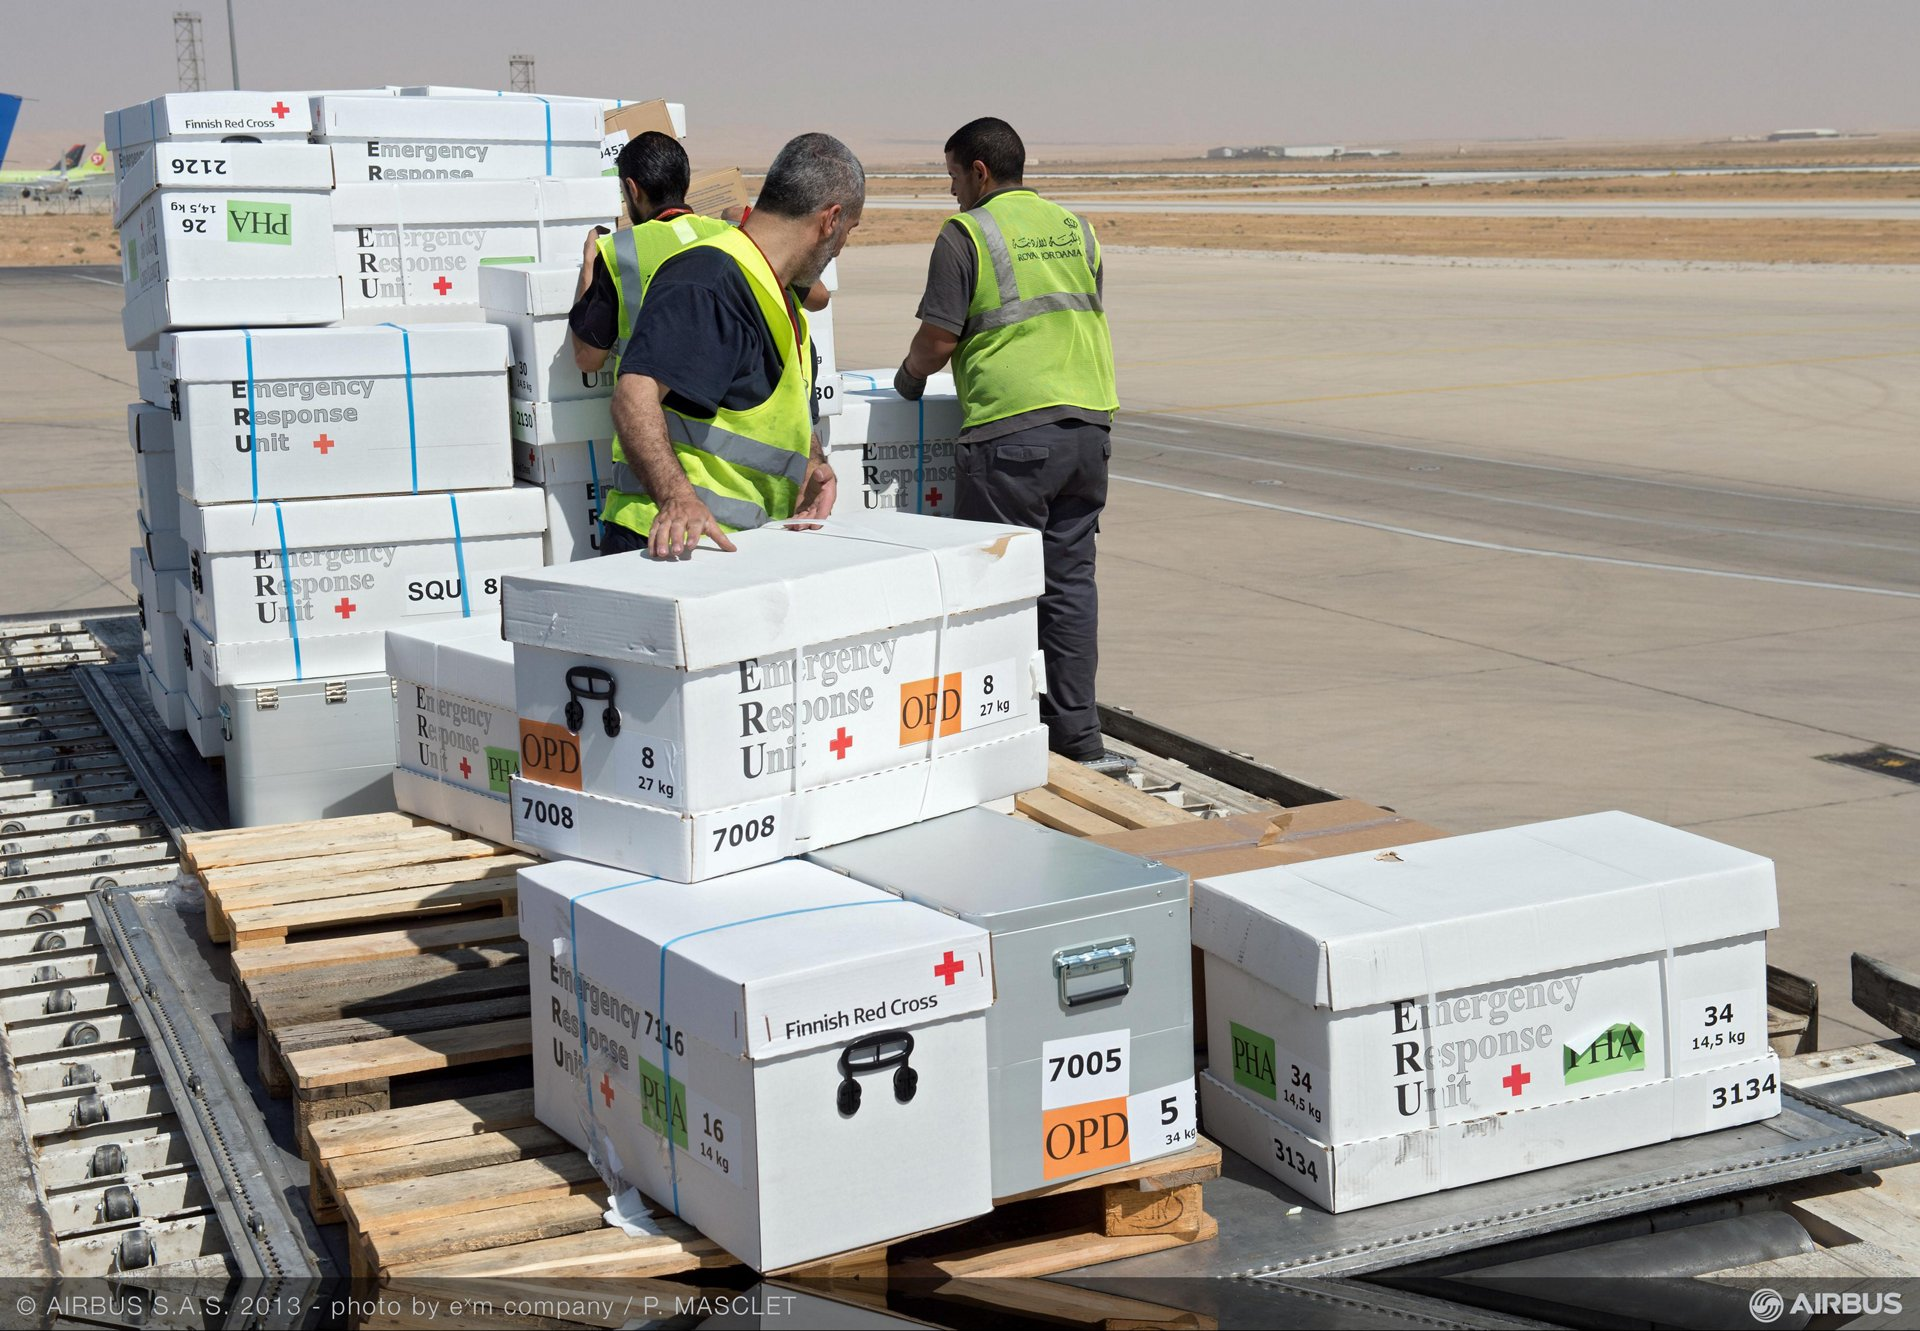 Twenty-five tonnes of medical equipment and supplies were transported to Syrian refugees in Jordan on 21 August 2013, by an Airbus flight arranged between the Airbus Corporate Foundation and the International Federation of Red Cross and Red Crescent Societies (IFRC)